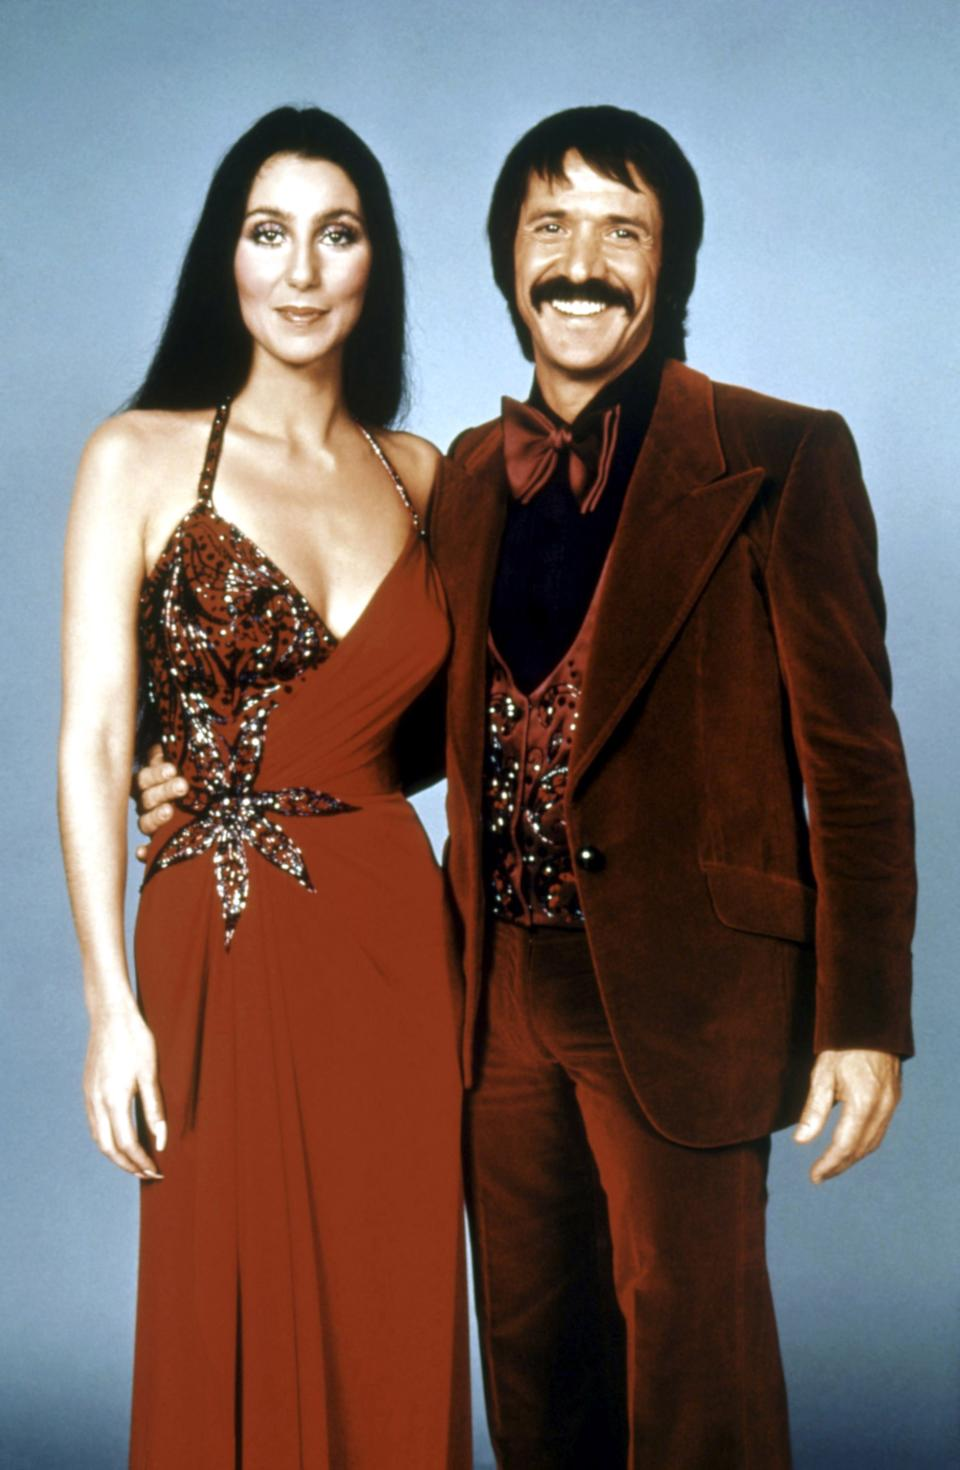 "<h1 class=""title"">THE SONNY AND CHER SHOW, from left: Cher, Sonny Bono, 1976-77.</h1><cite class=""credit"">Courtesy Everett Collection</cite>"